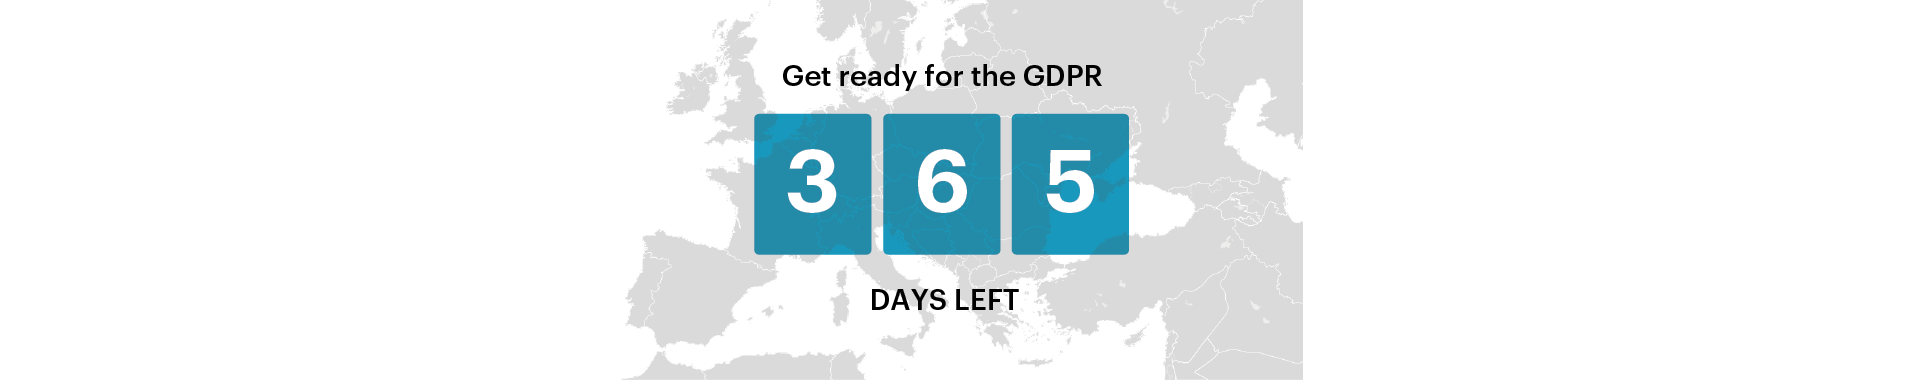 GDPR countdown: Encrypt now to get ready